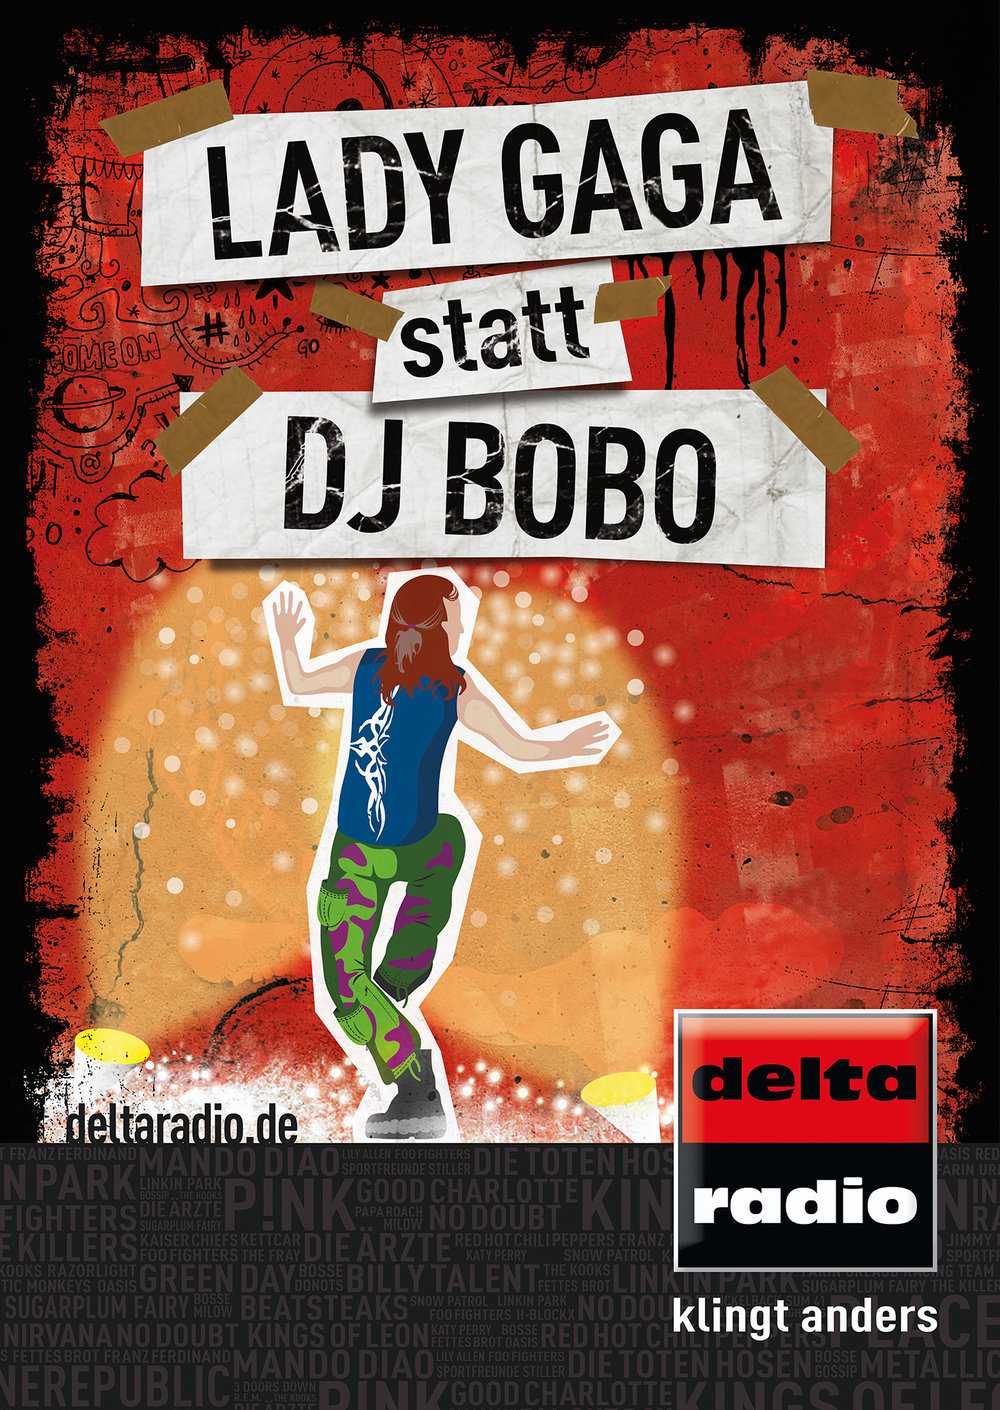 rbtq_Illustration_Seiser_Illustratorin_Hamburg_Editorial_DeltaRadio_Lady_Gaga.jpg